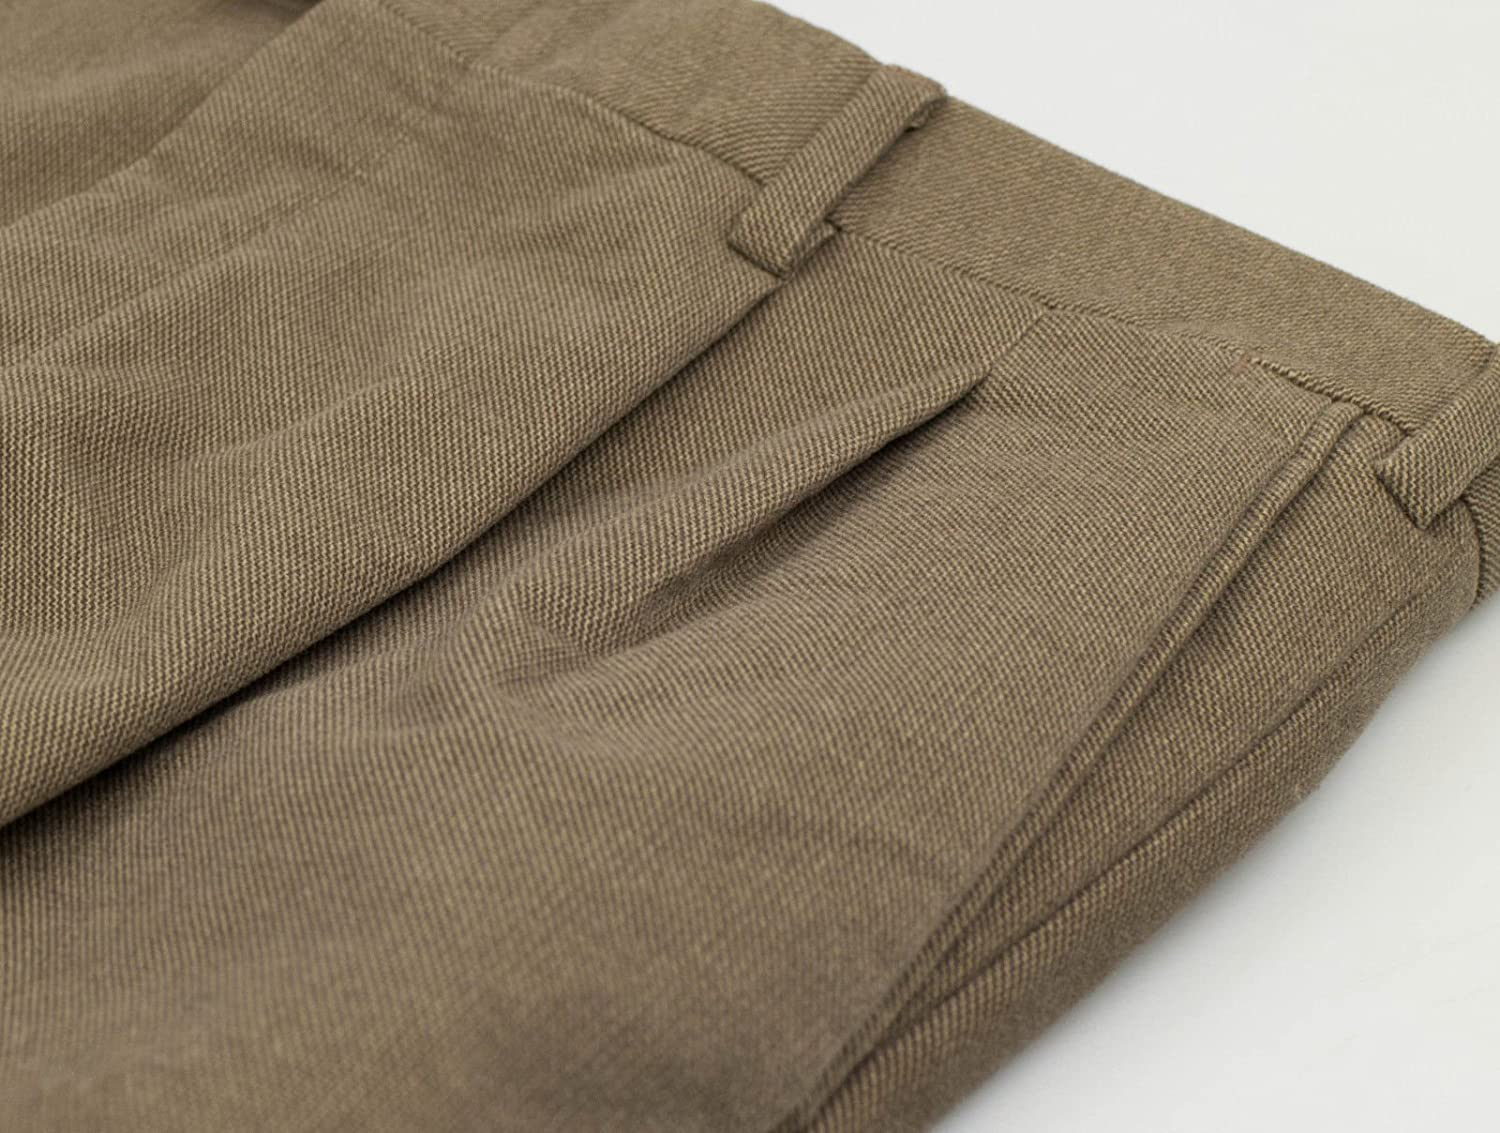 BRIONI Canazei Brown Cotton Blend Pleated Casual Pants Size 50//34 R